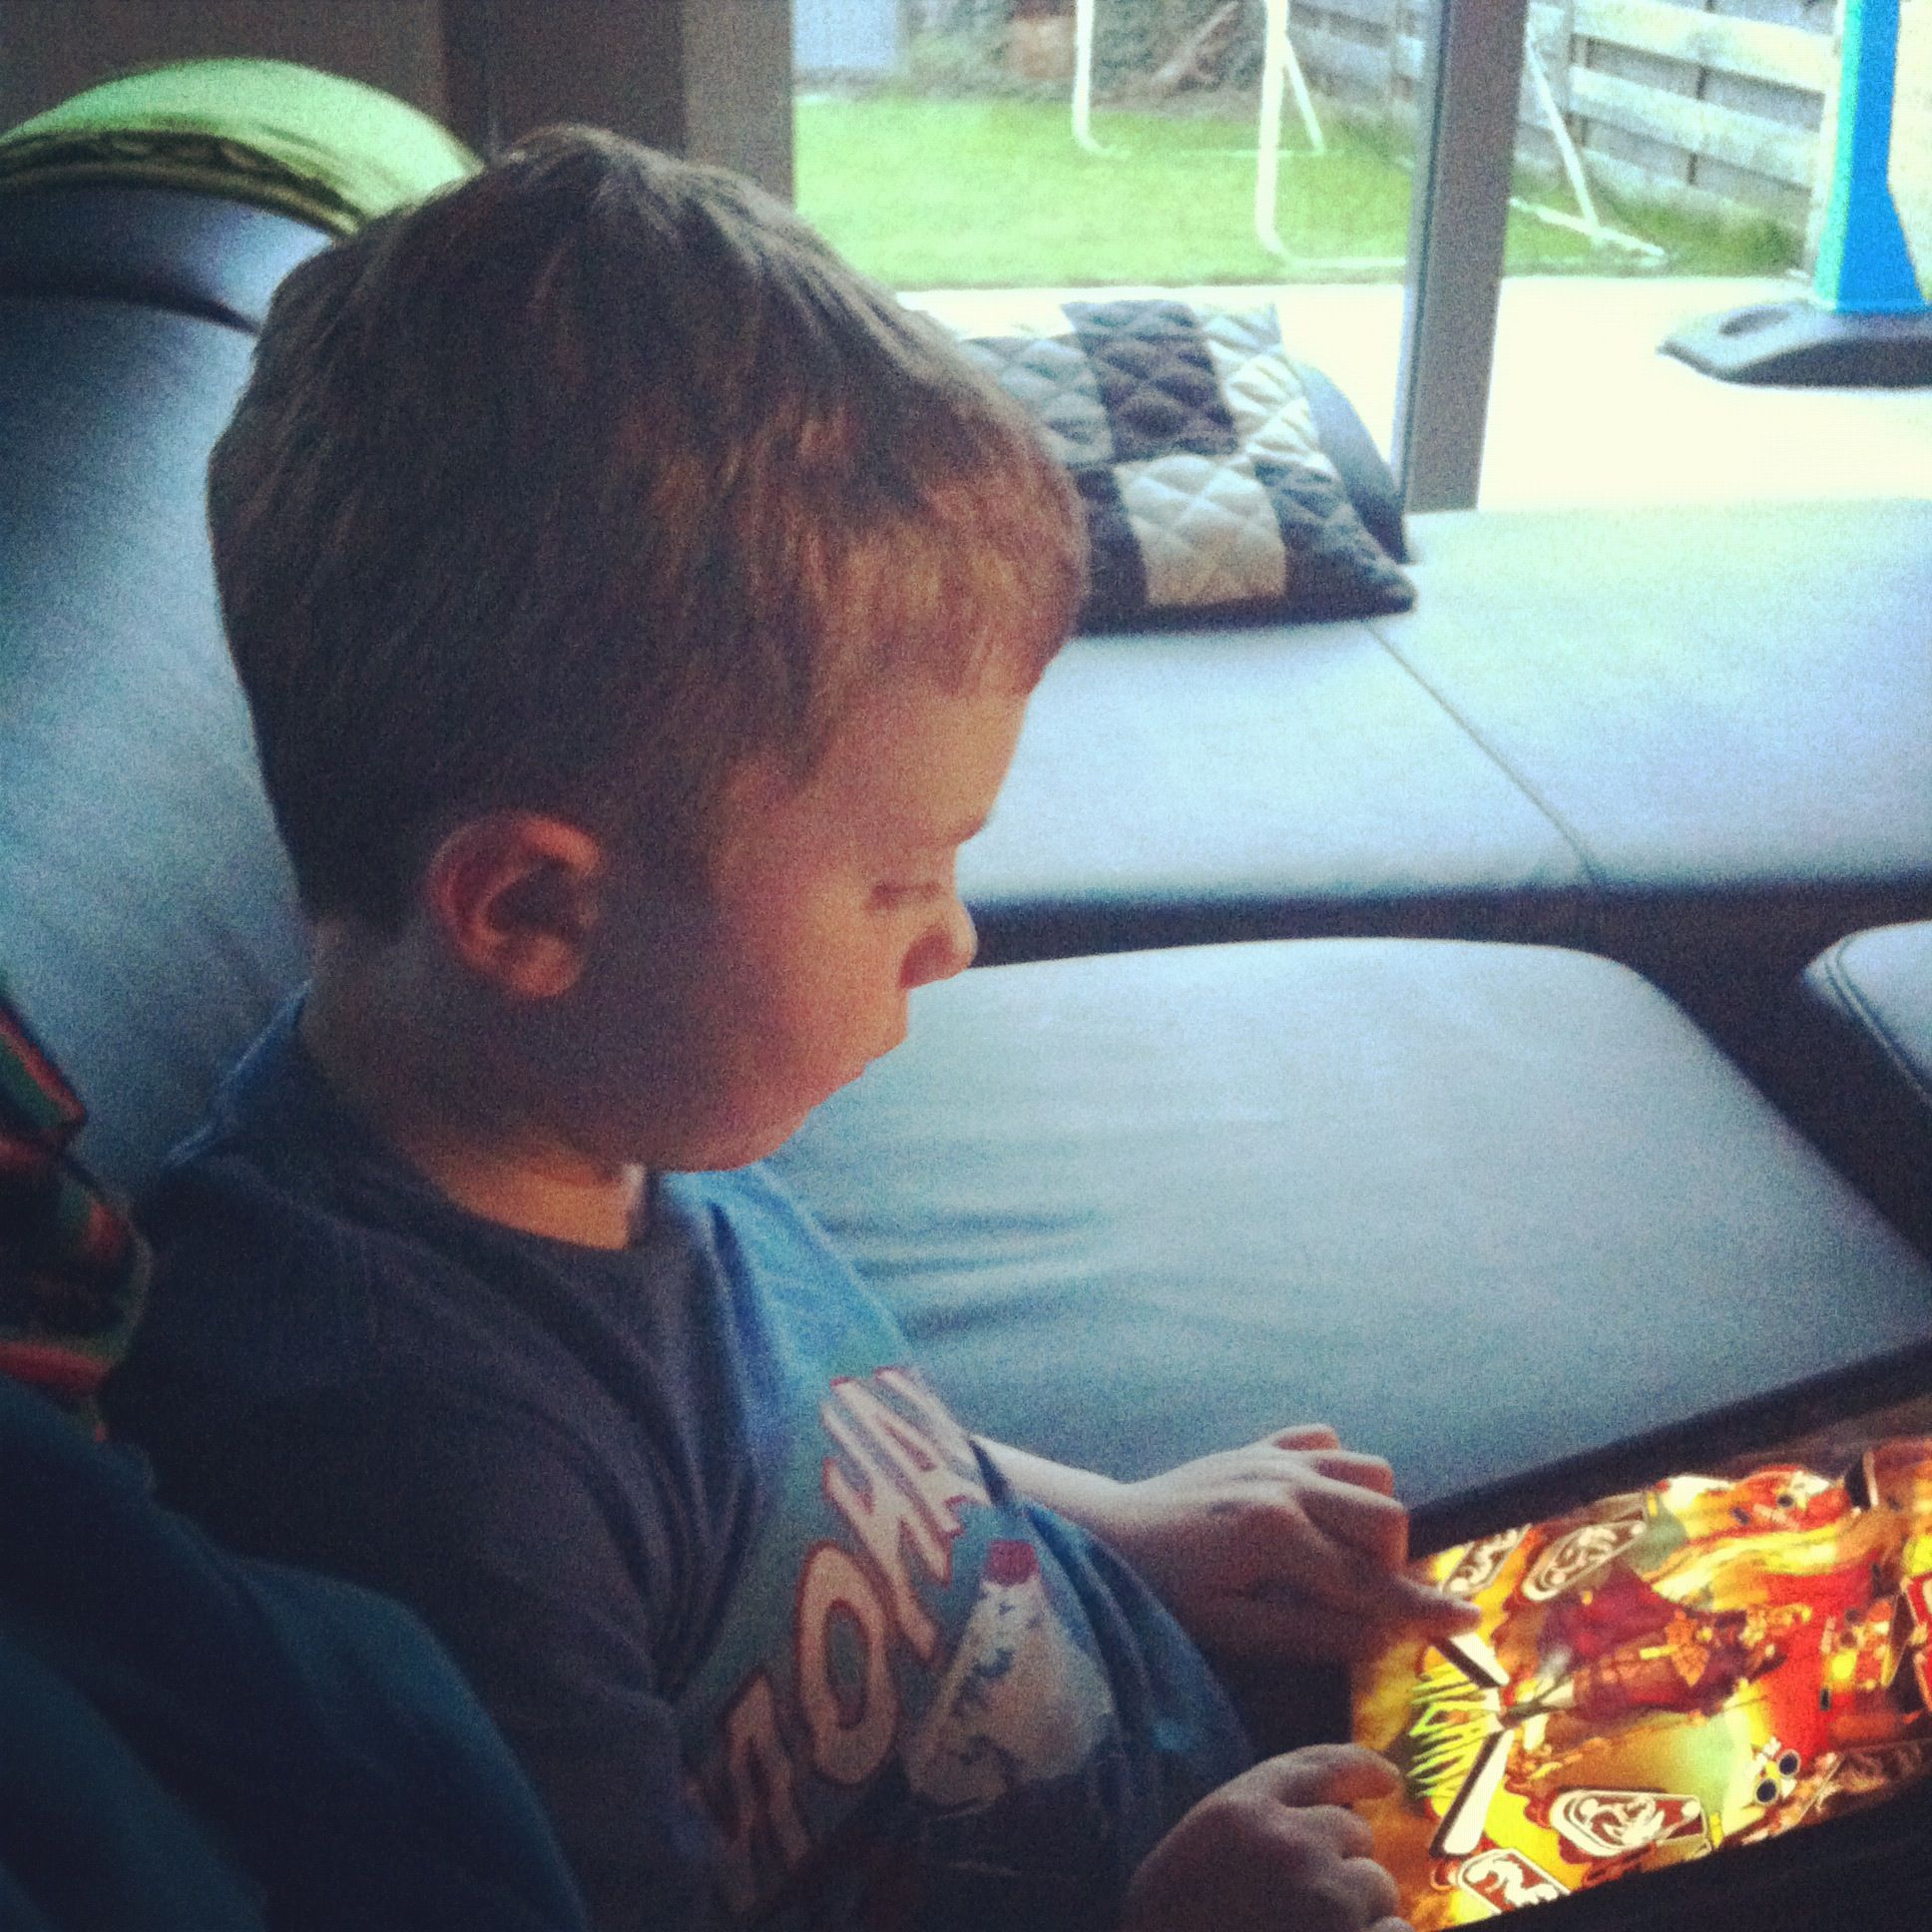 robbe ipad playing1